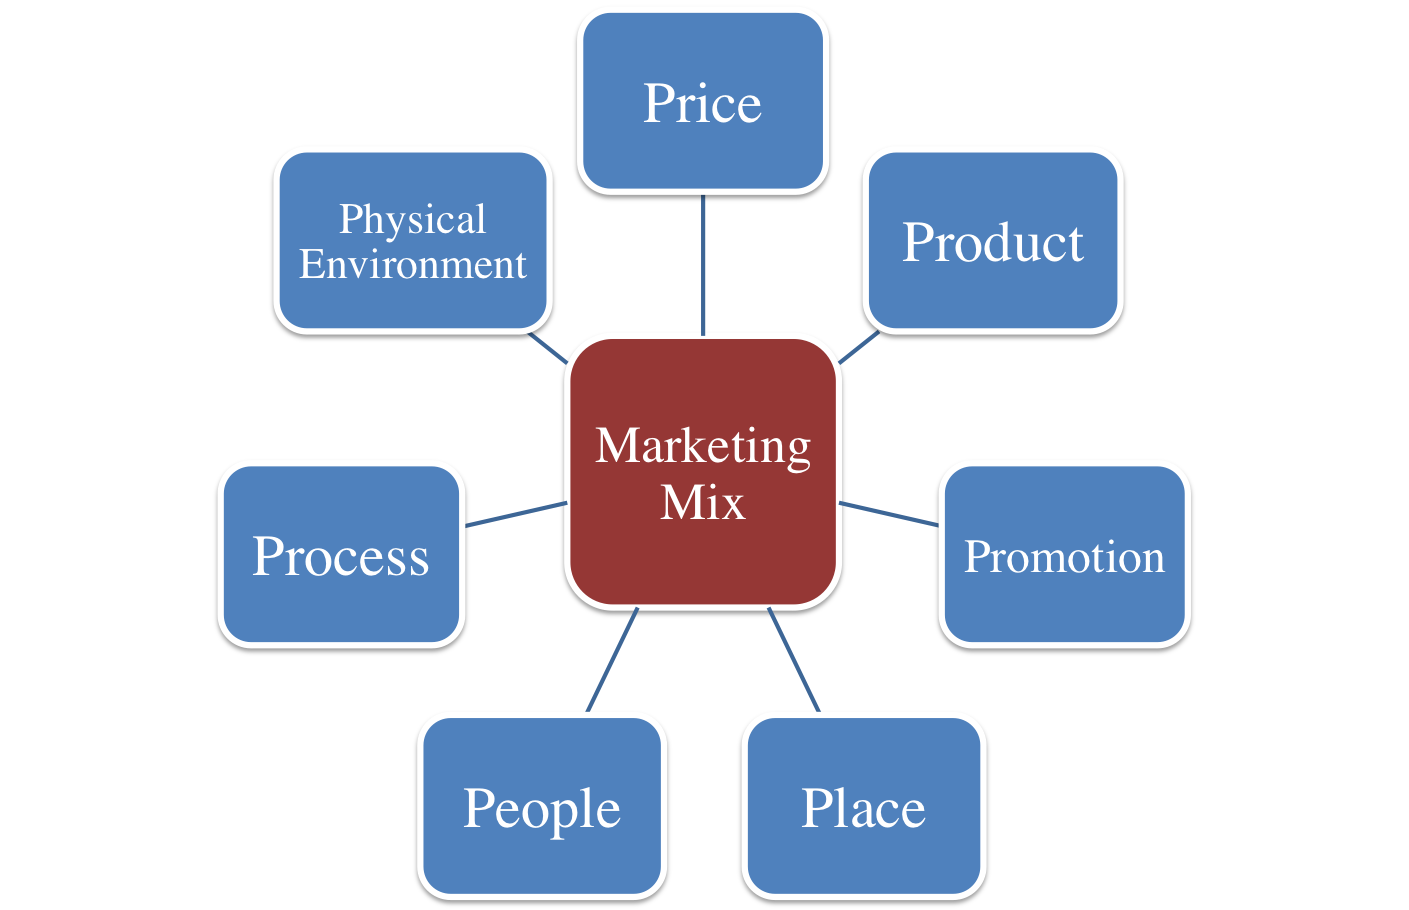 mba dissertation on marketing mix The marketing mix involves the whole set of marketing decisions and actions taken to ensure the success of a product, service or a brand in its market on a broader scale, the marketing mix model can be implemented to help decision-making in the perspective of a new offer on the market, and also to test an existing marketing strategy.